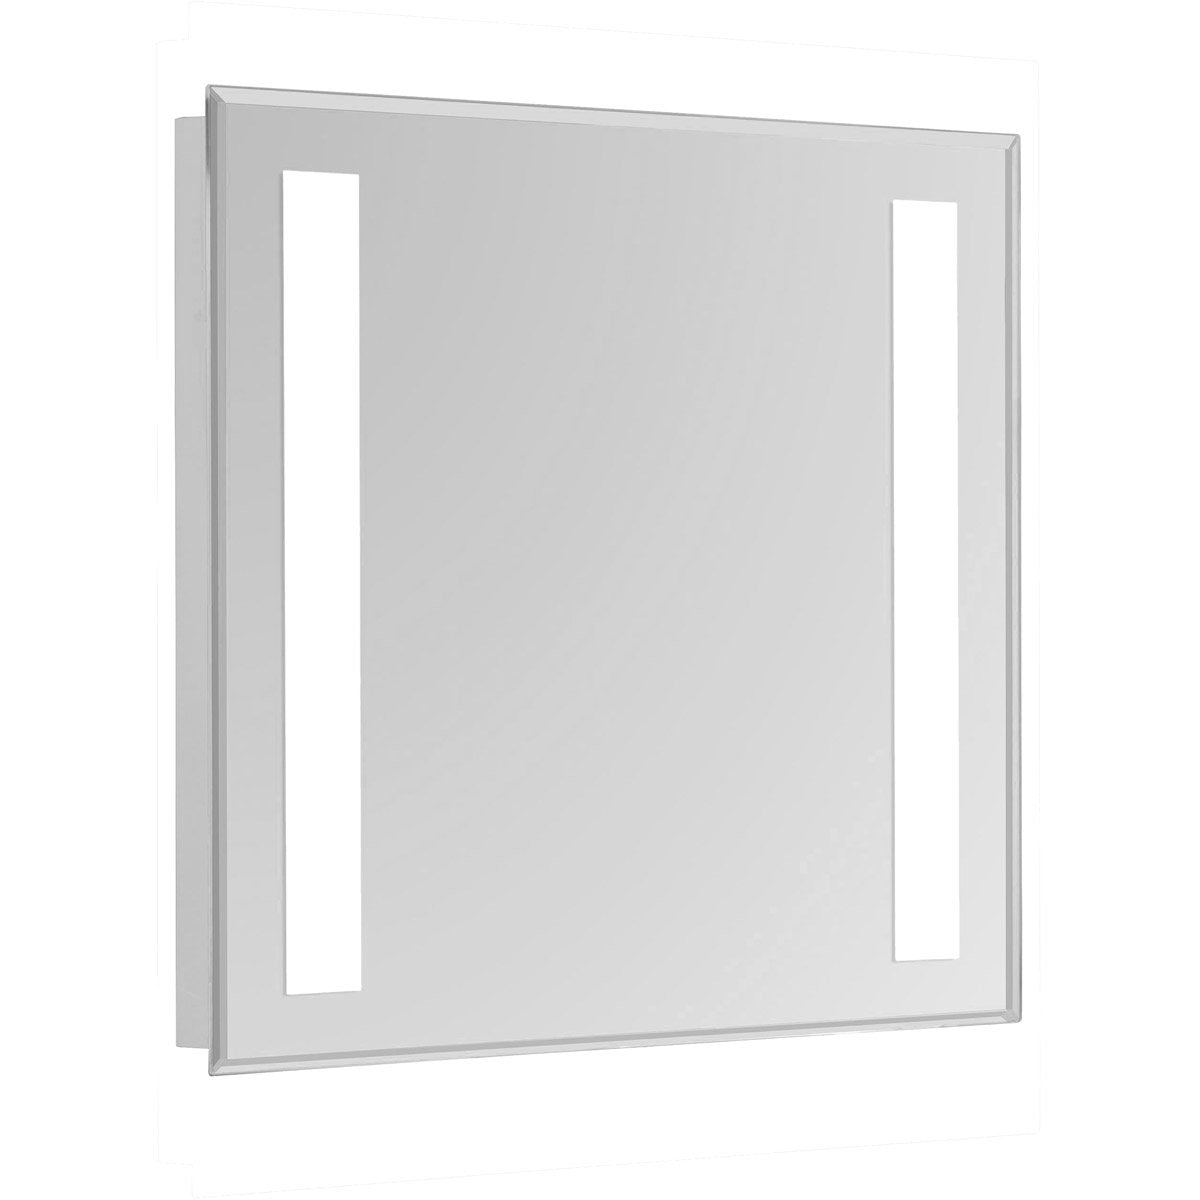 Nova 30 X 20 Hardwired Glossy White Led Wall Mirror (Mre-6301) Led Mirror